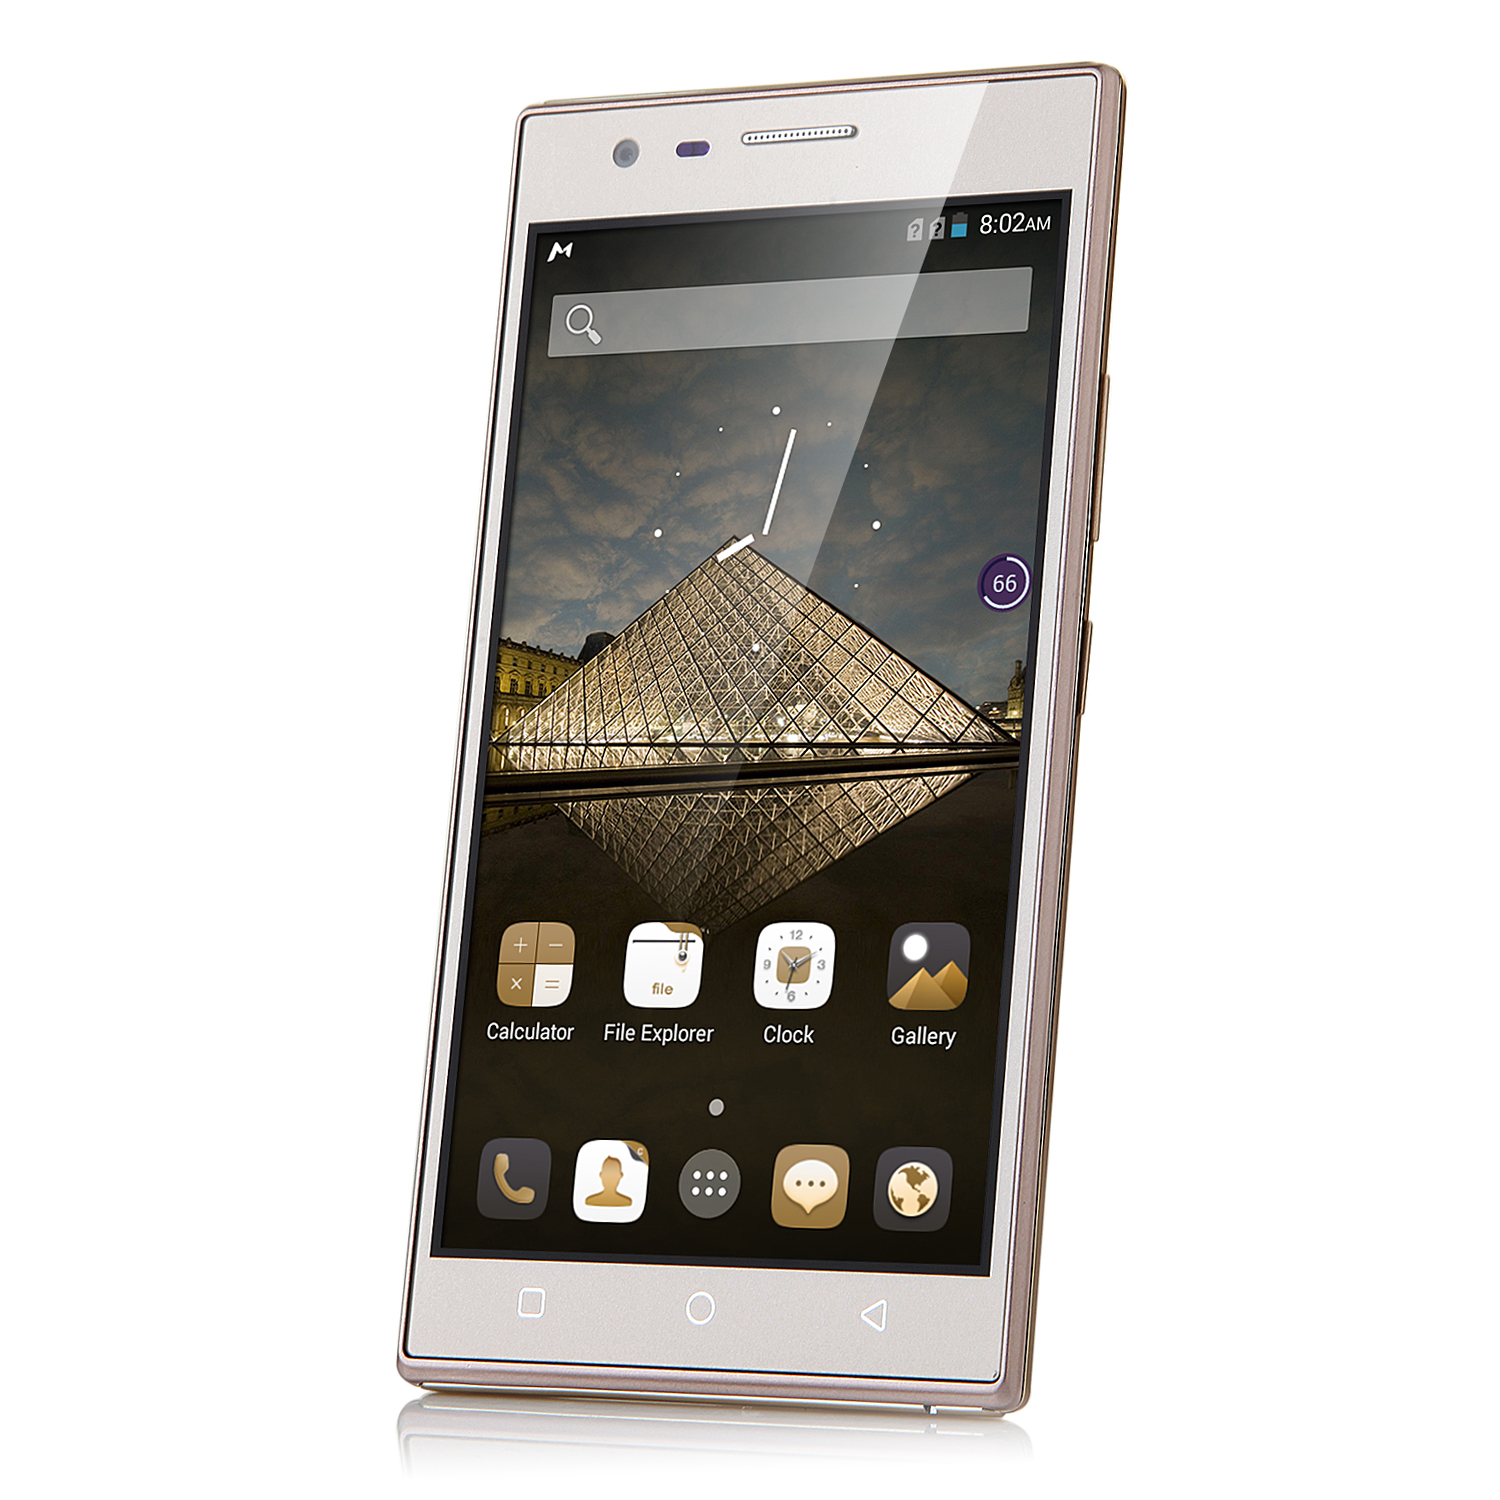 Tengda P7 Smartphone 5.0 Inch QHD Screen Quad Core Android 4.4 3G GPS Gold